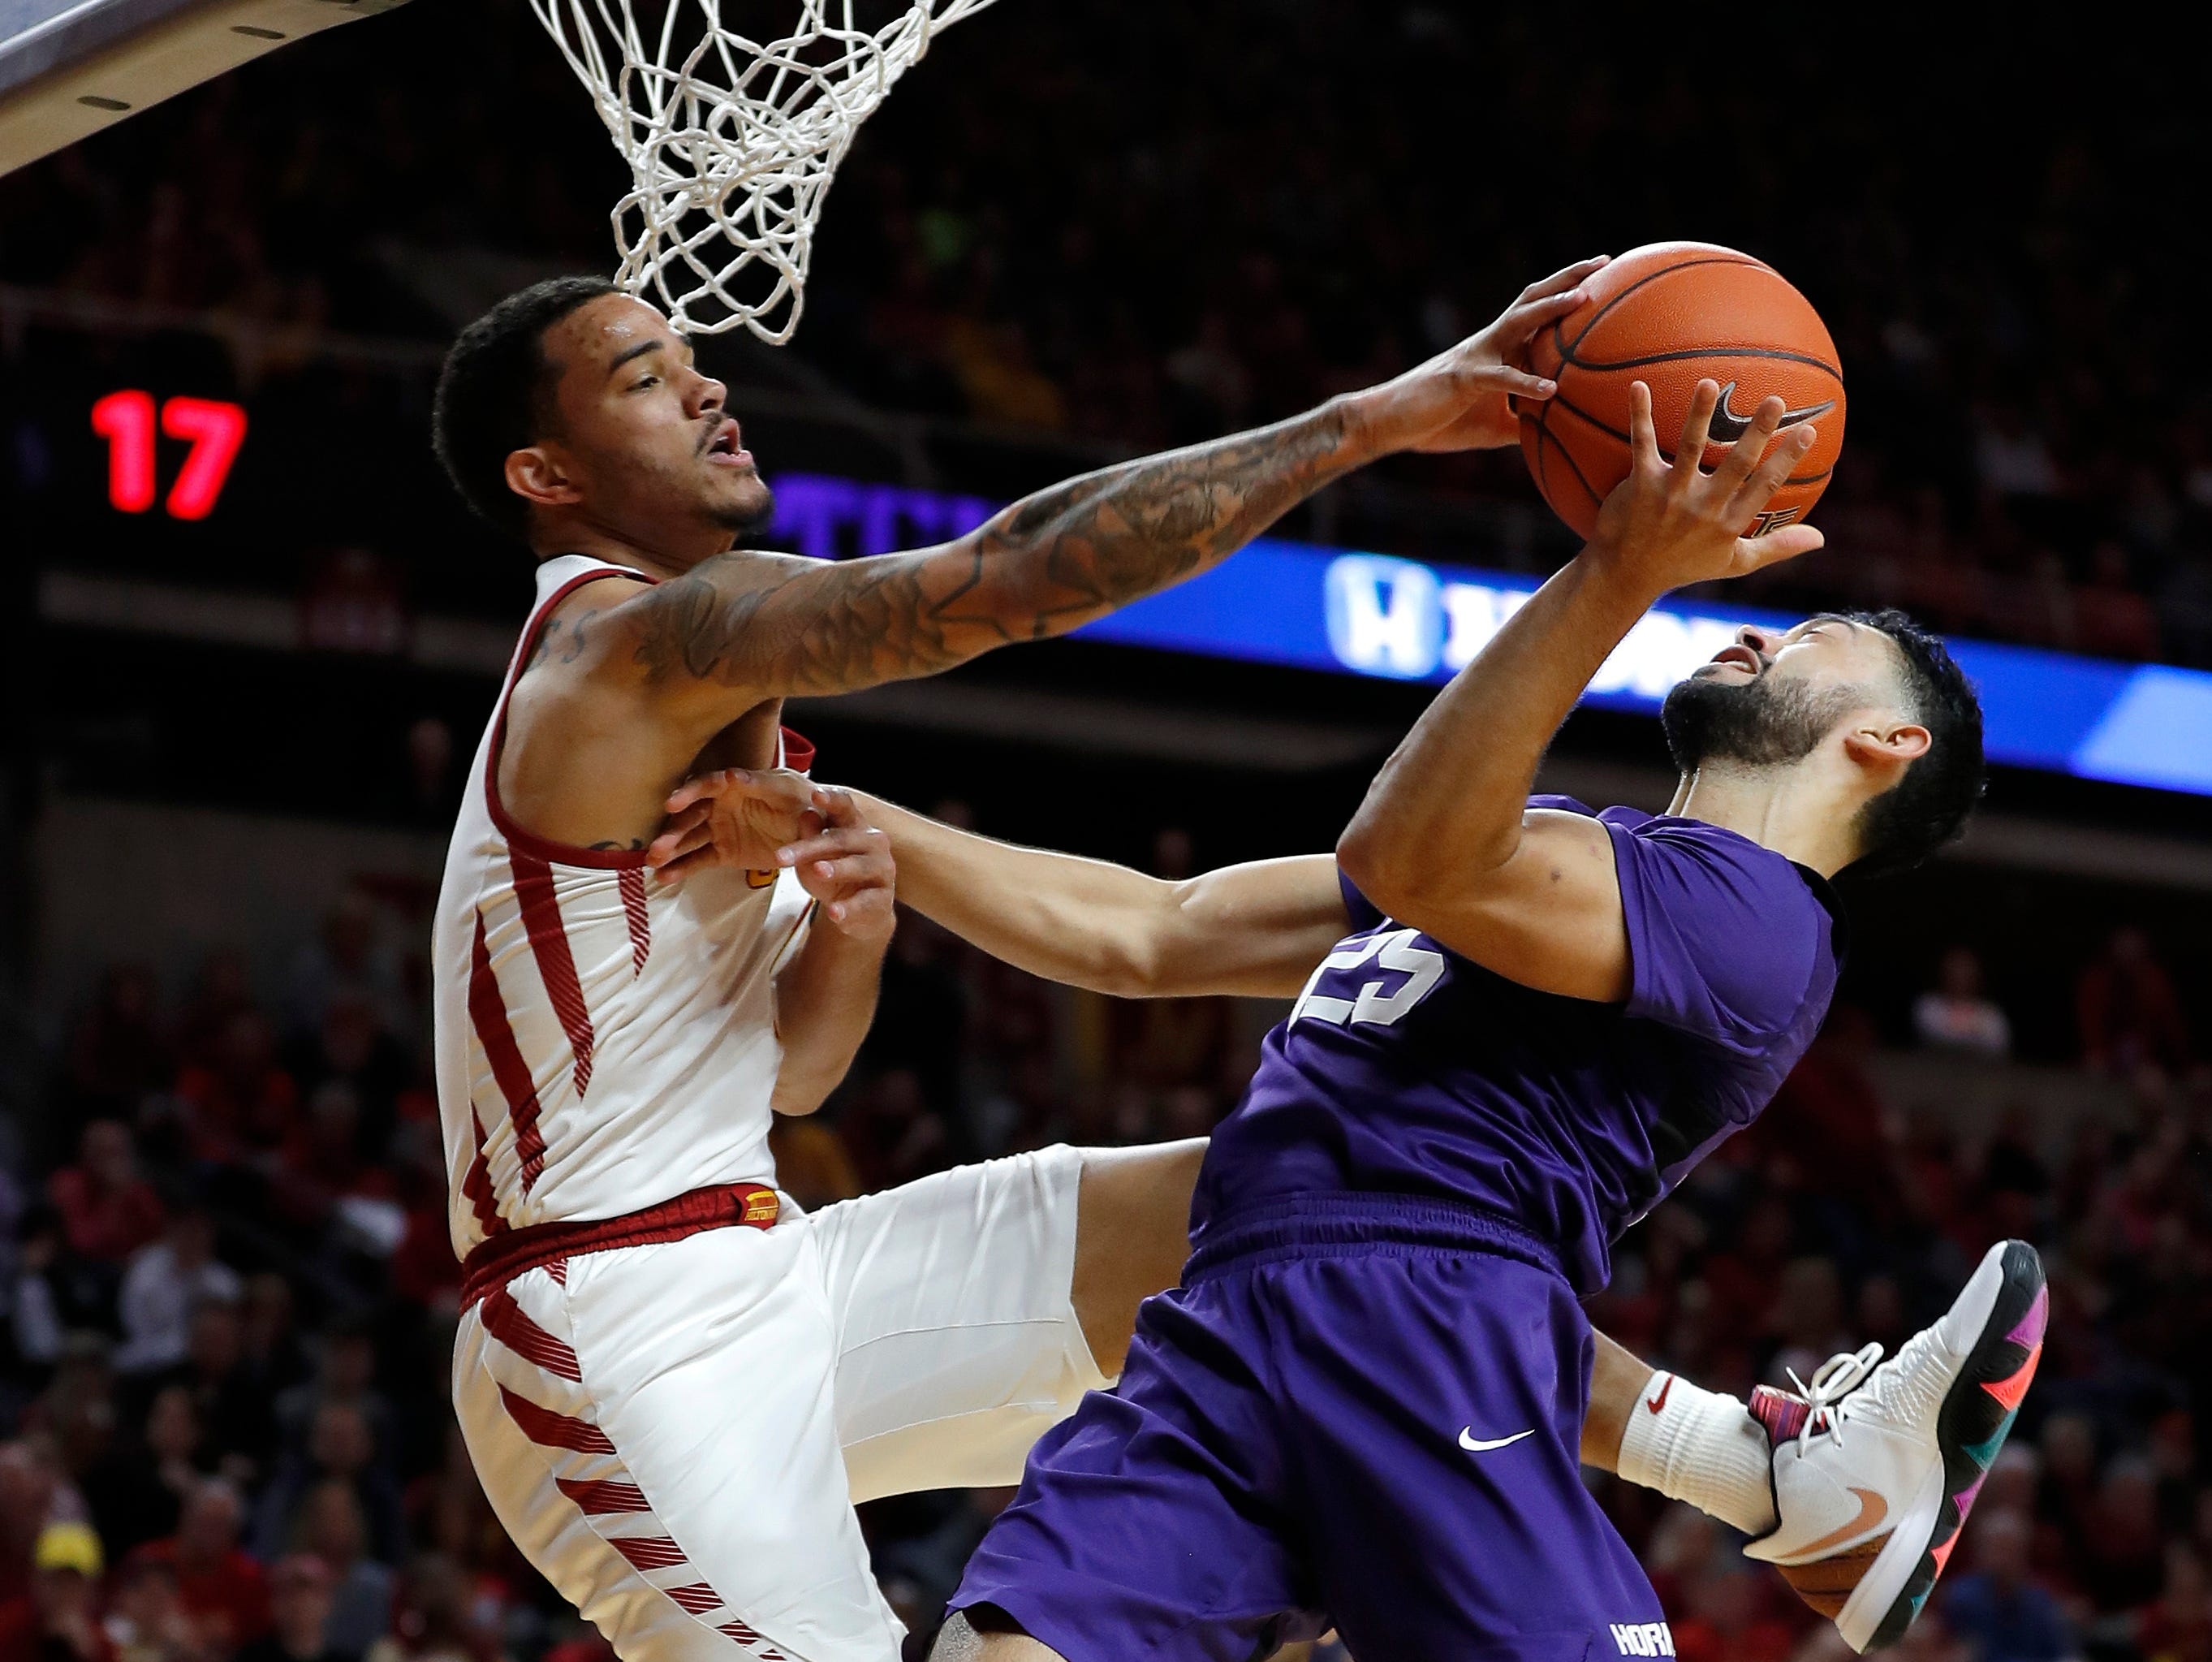 Iowa State guard Nick Weiler-Babb, left, blocks a shot by TCU guard Alex Robinson, right, during their game Saturday, Feb. 9, 2019, in Ames.